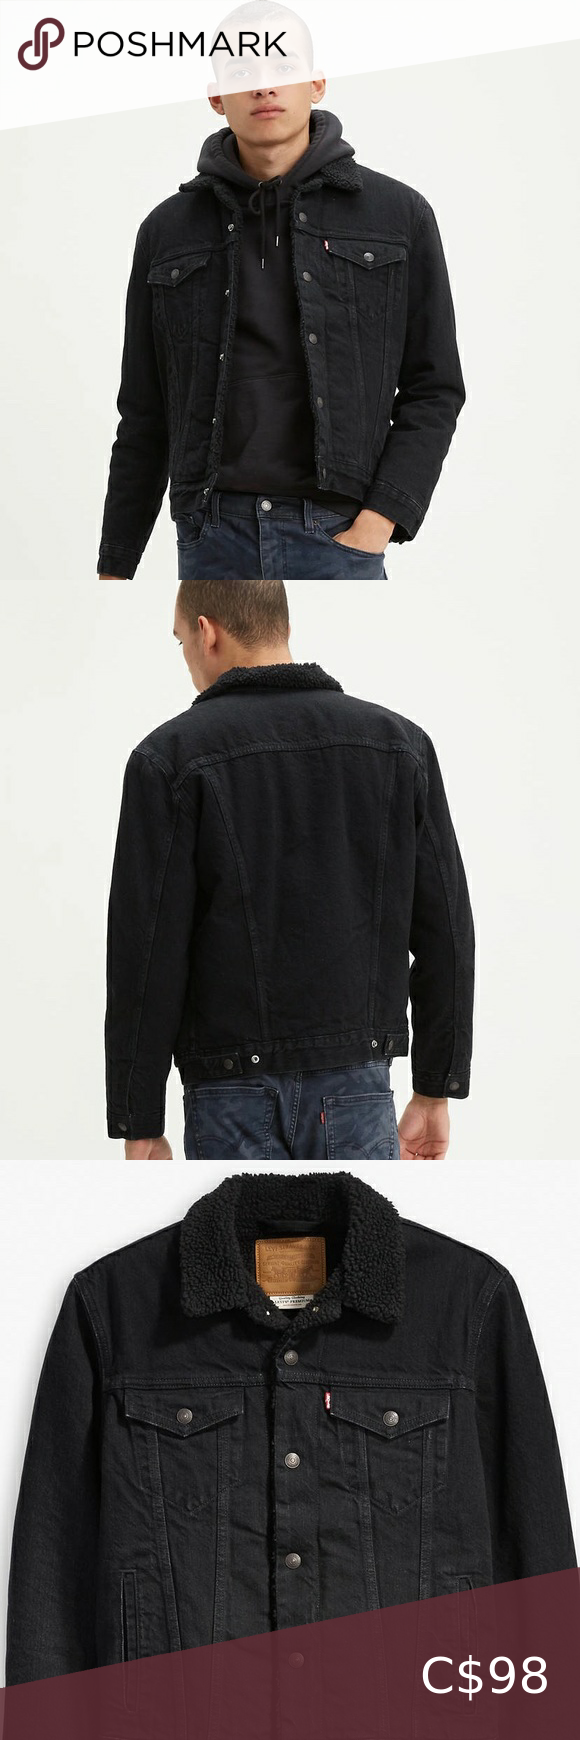 Levi's Sherpa Trucker Jacket Black in 2020 Jackets